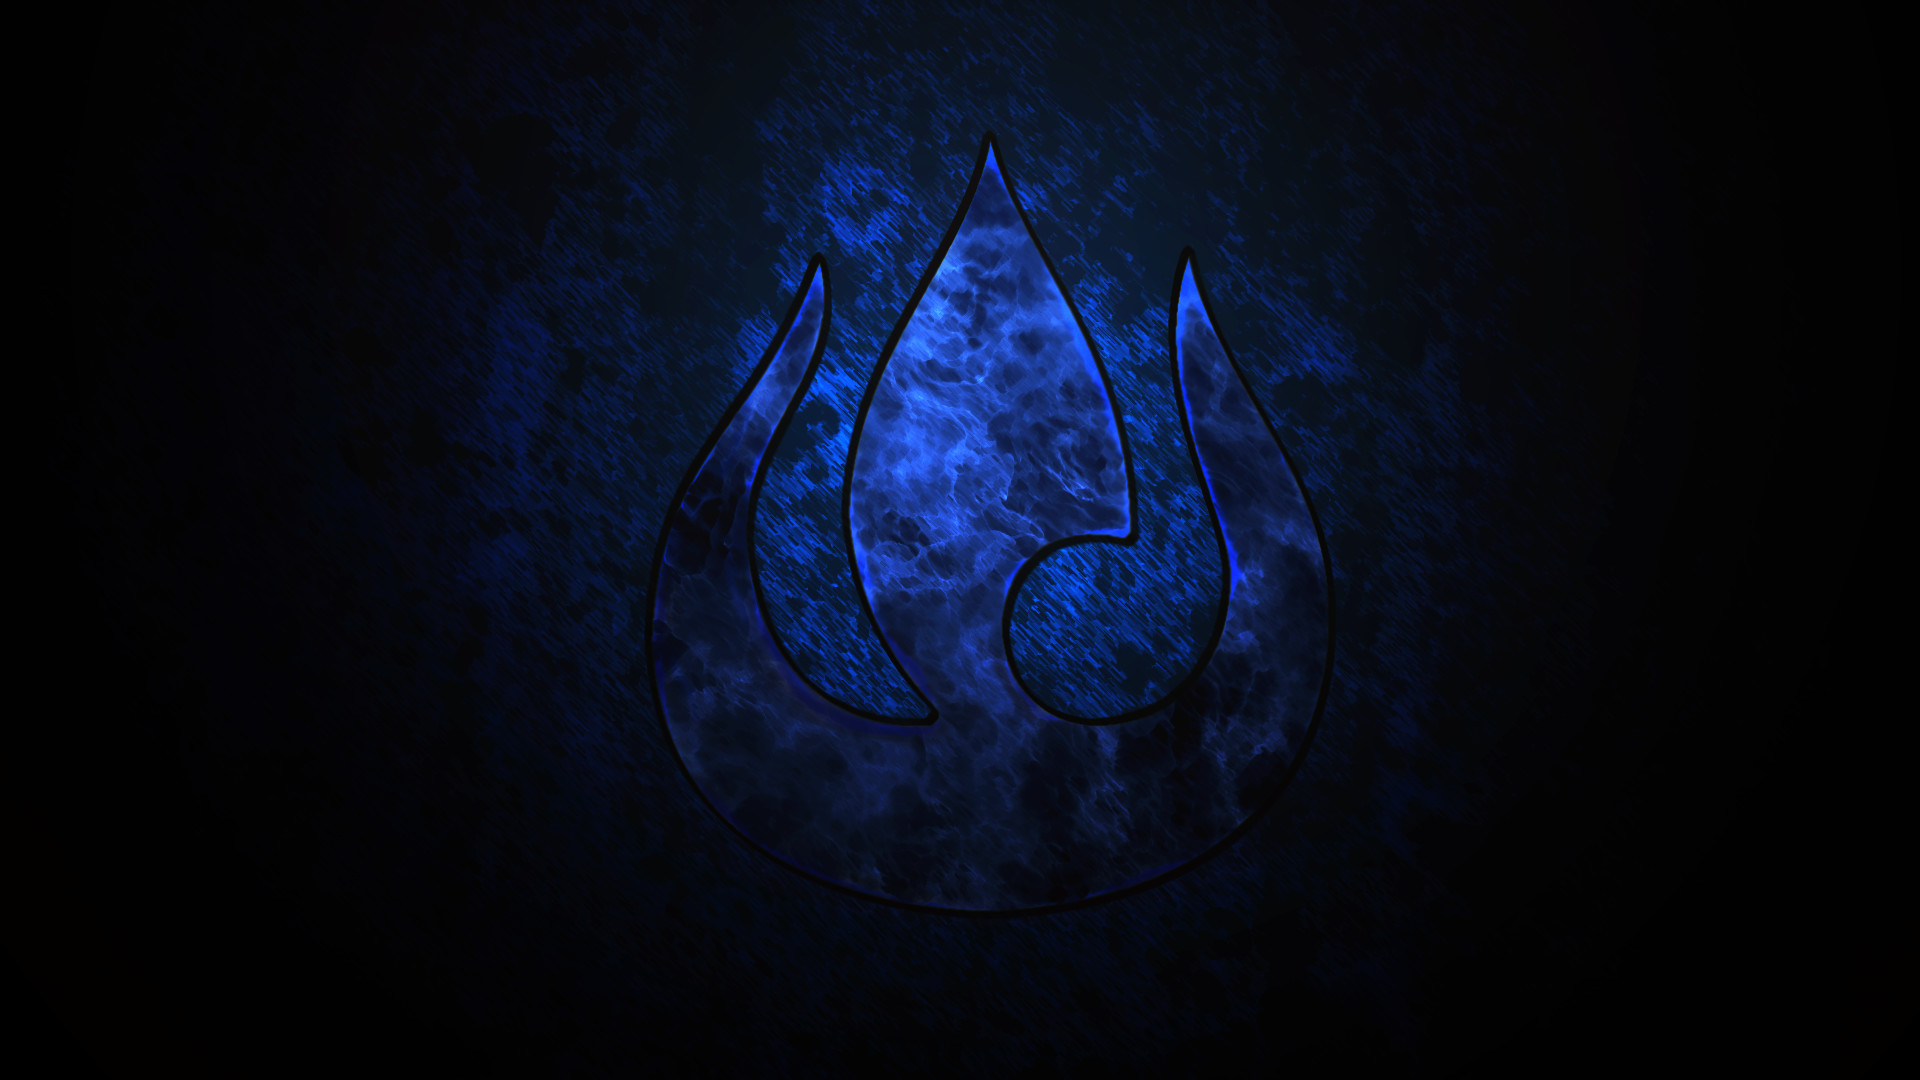 Res: 1920x1080, Blue Fire Nation by BL00DYP1R4T3 Blue Fire Nation by BL00DYP1R4T3